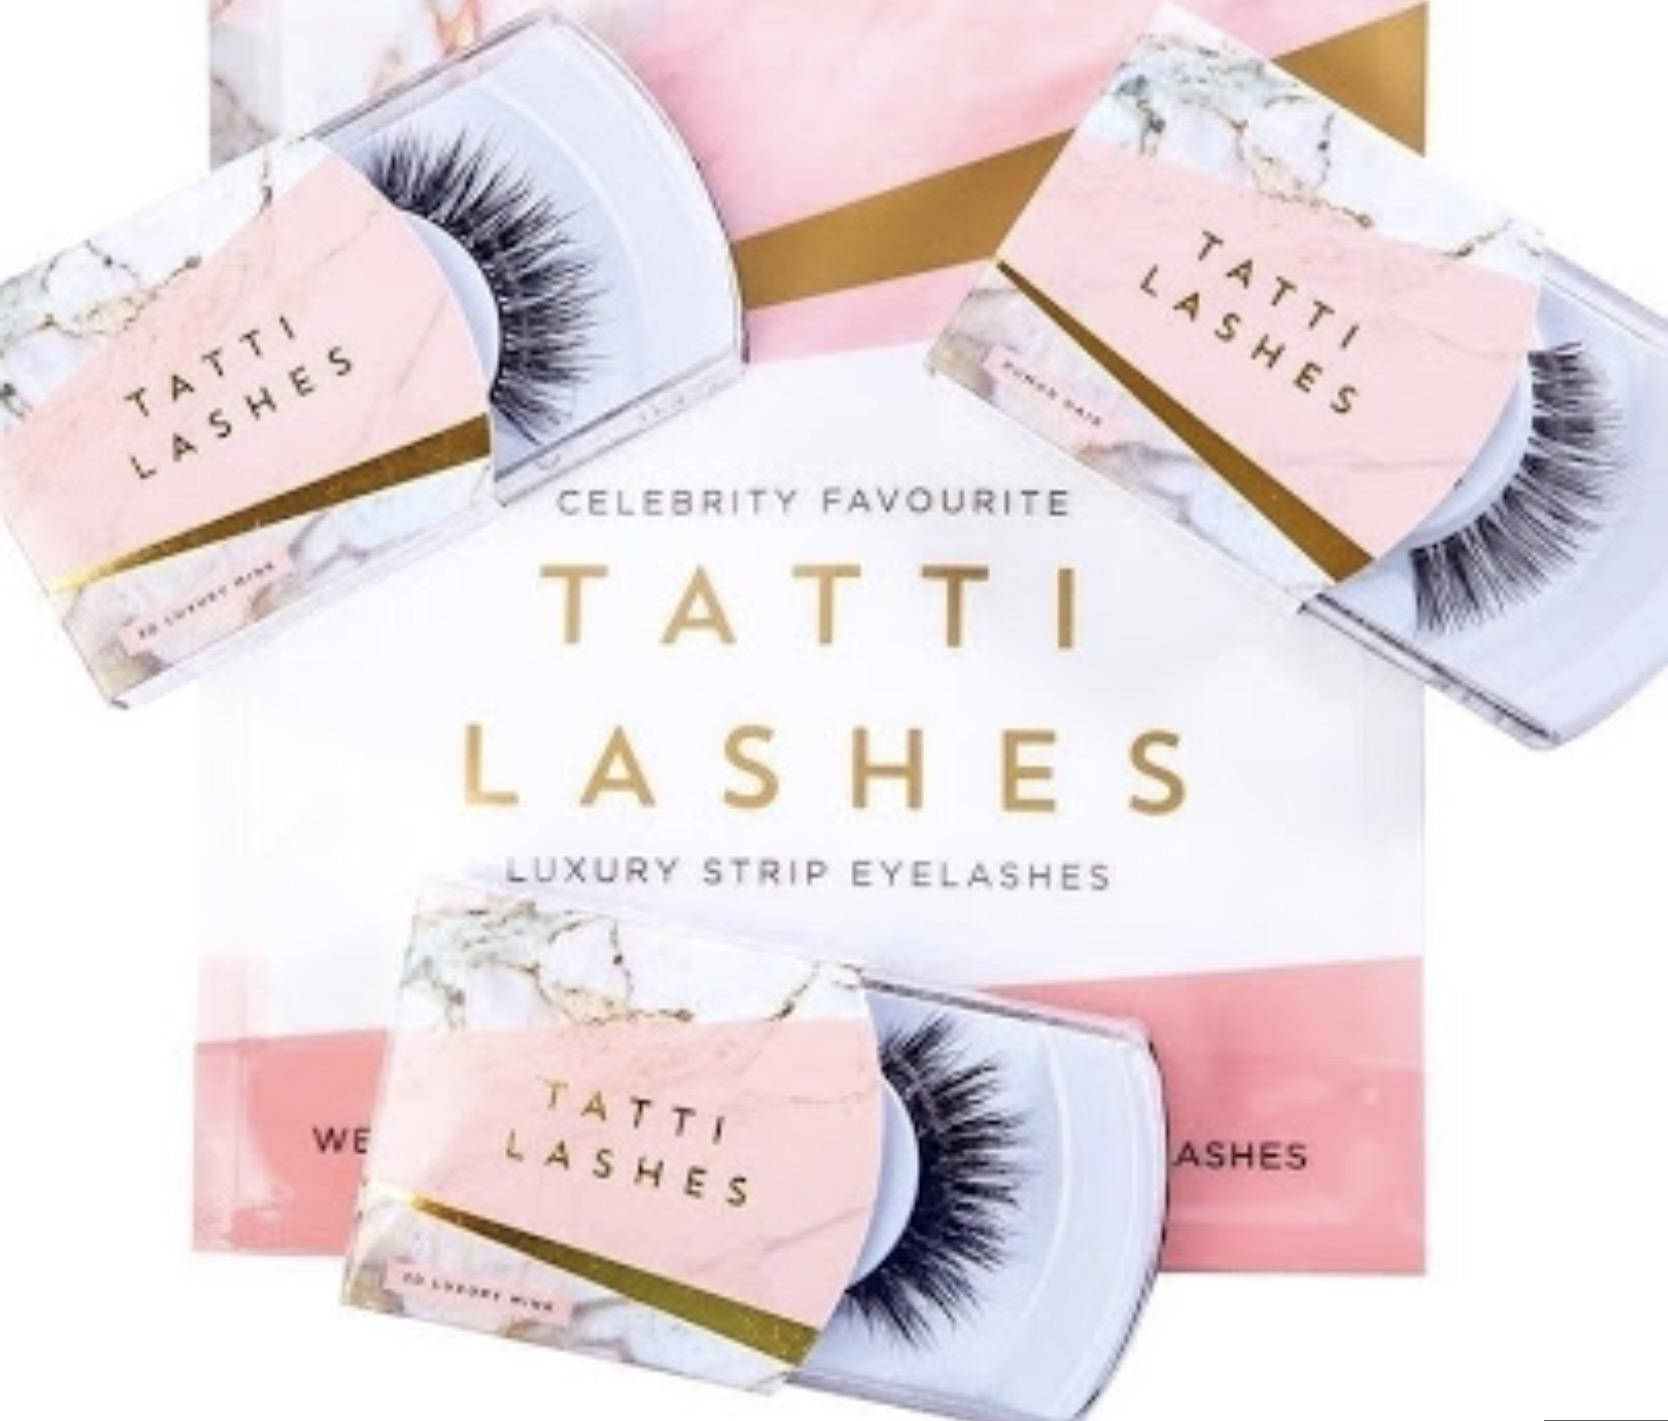 Beauty Brands I want to Try - Tatti Lashes